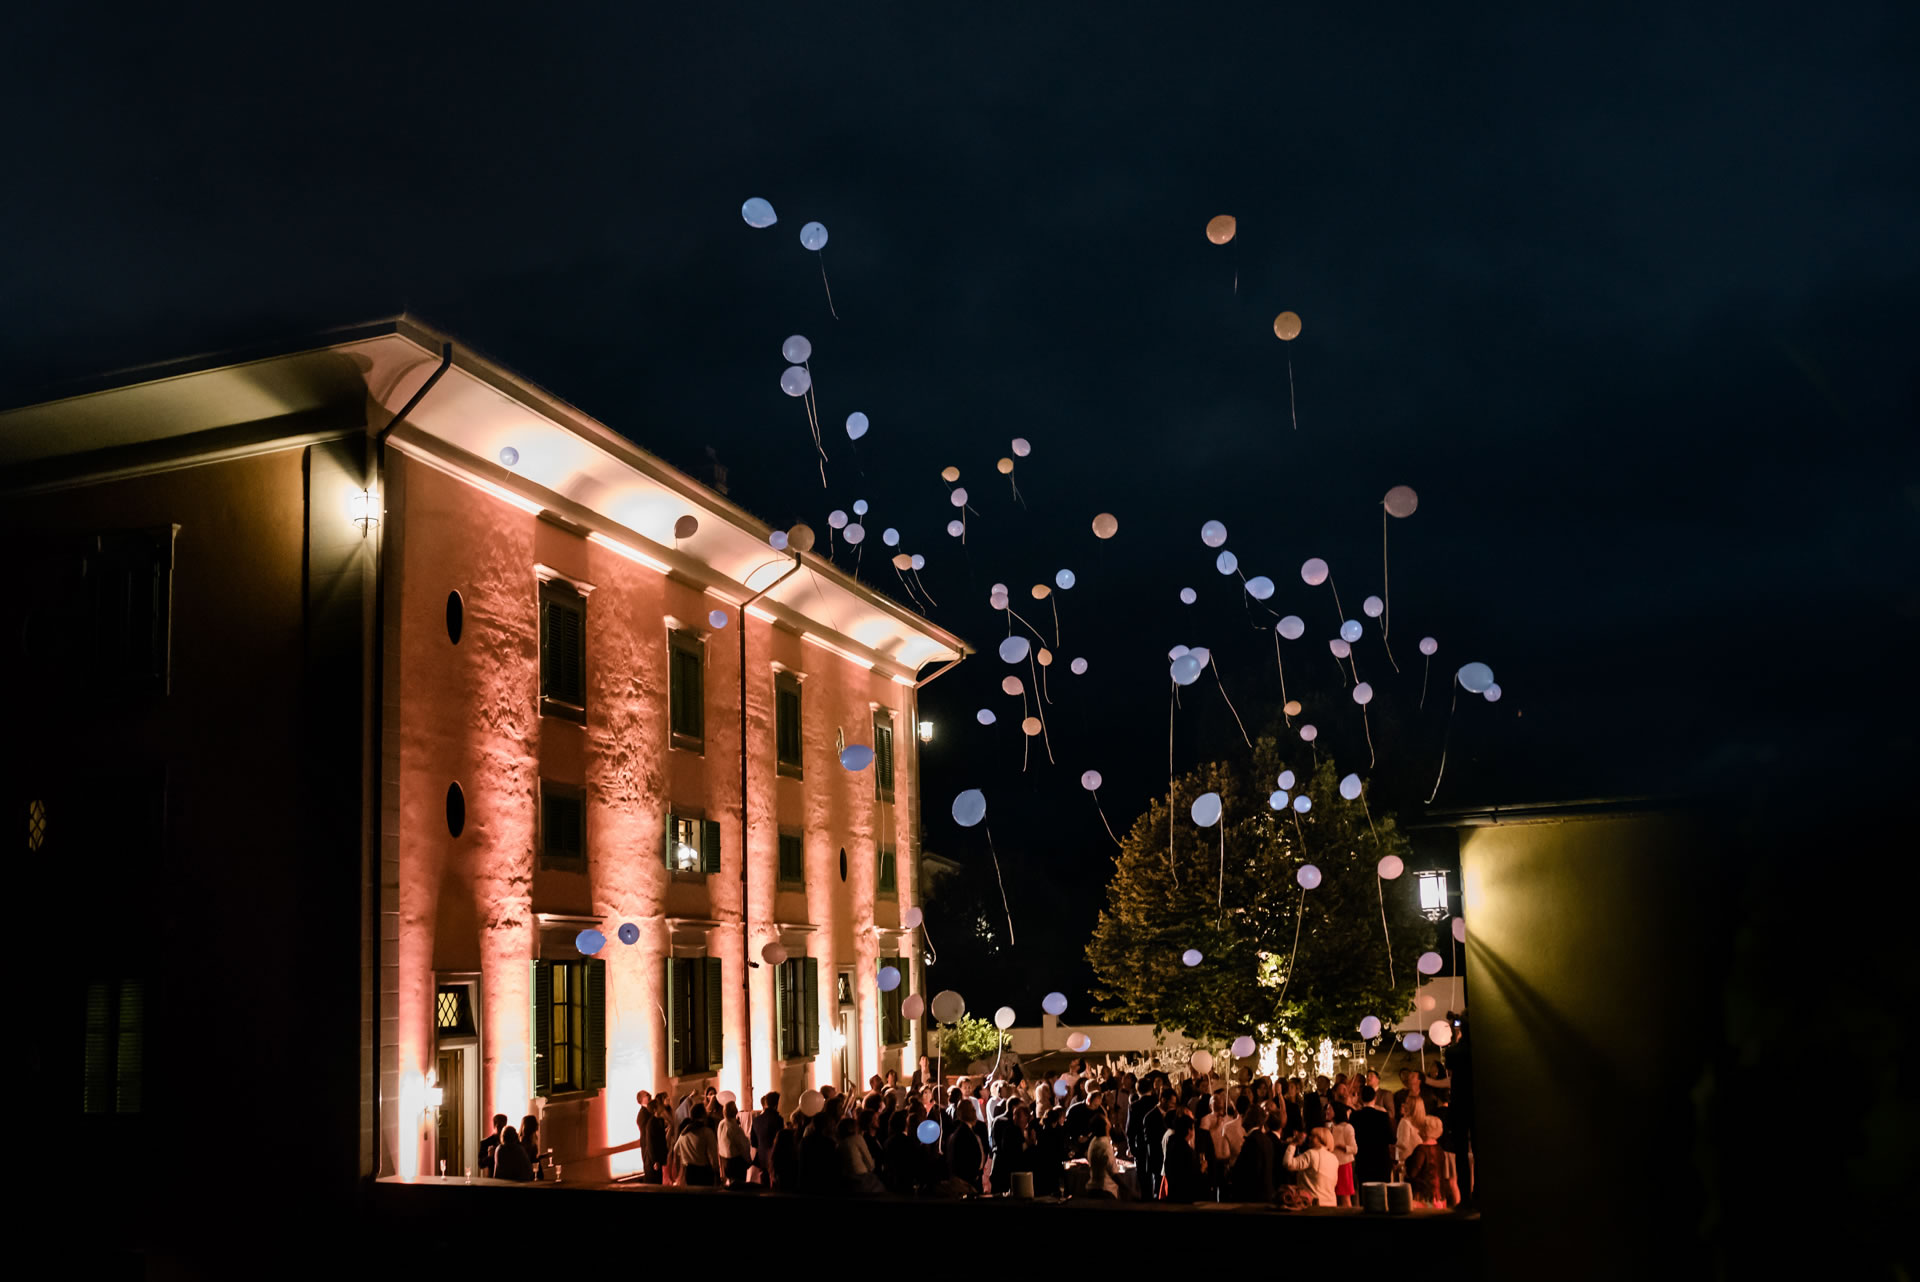 Balloons - 50 :: Amazing wedding day at Il Borro :: Luxury wedding photography - 49 :: Balloons - 50